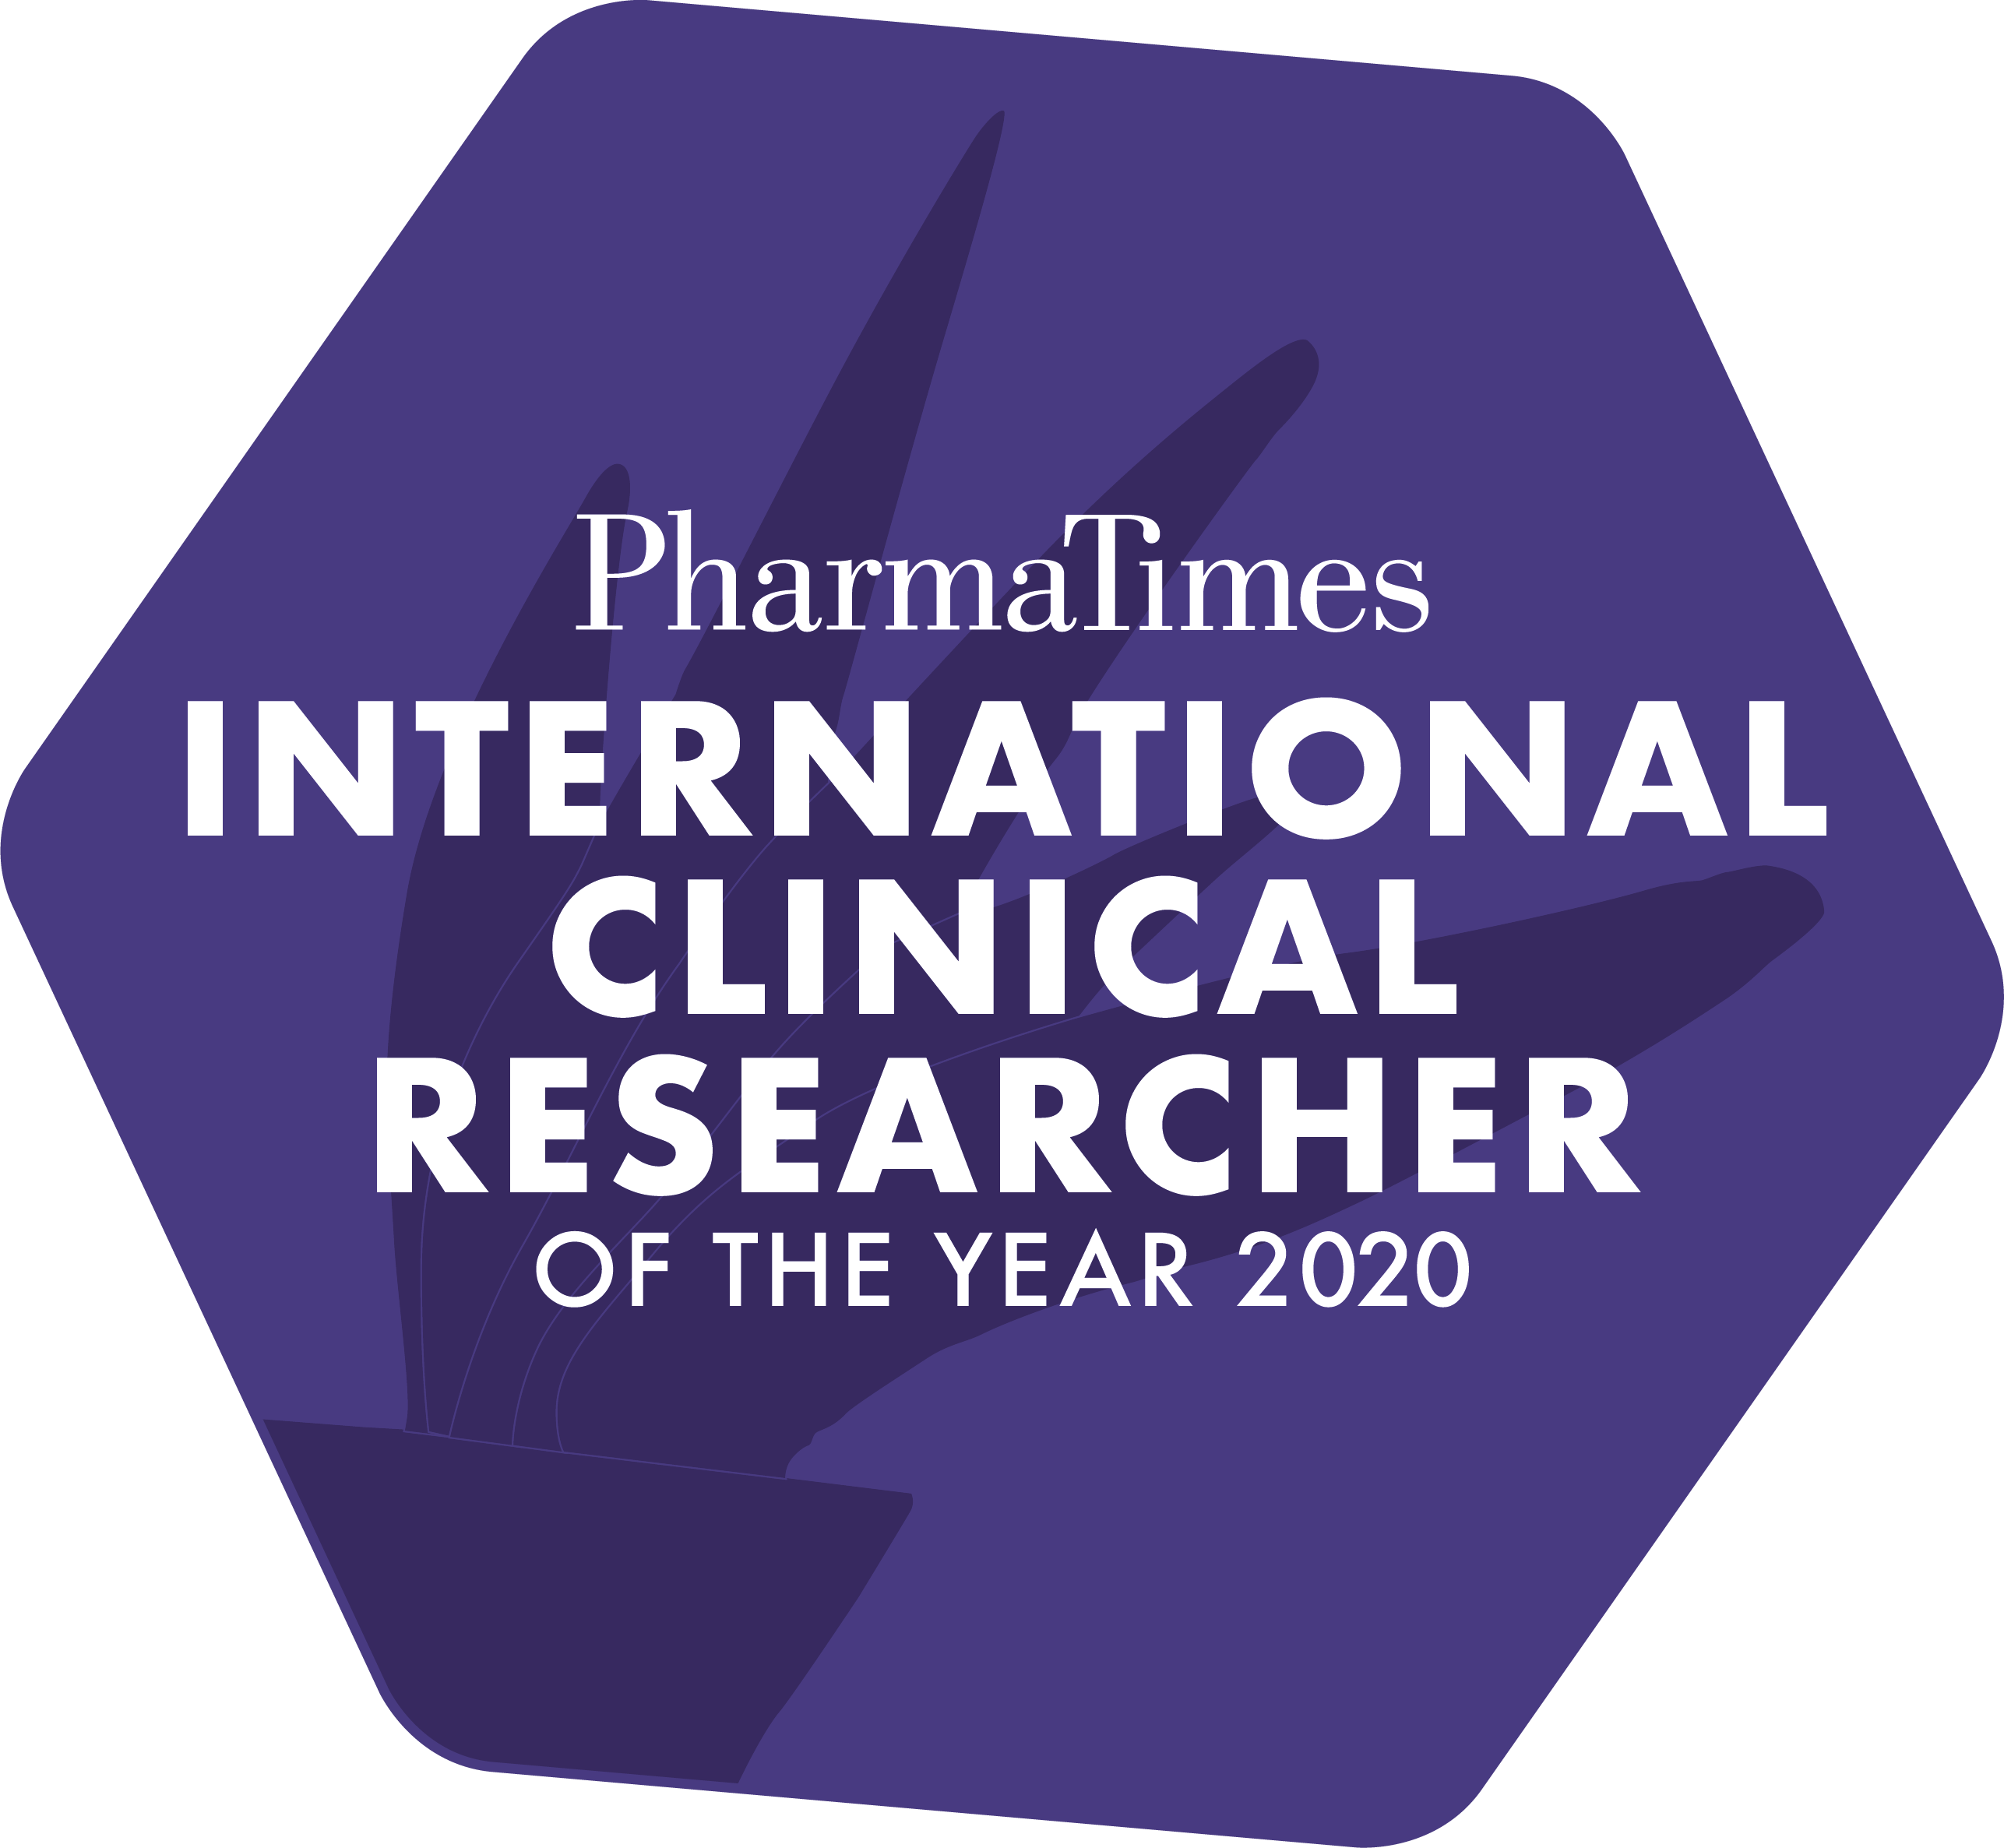 Thumbnail image for PharmaTimes are excited to announce the launch of the 2020 International Clinical Researcher of the Year competition!